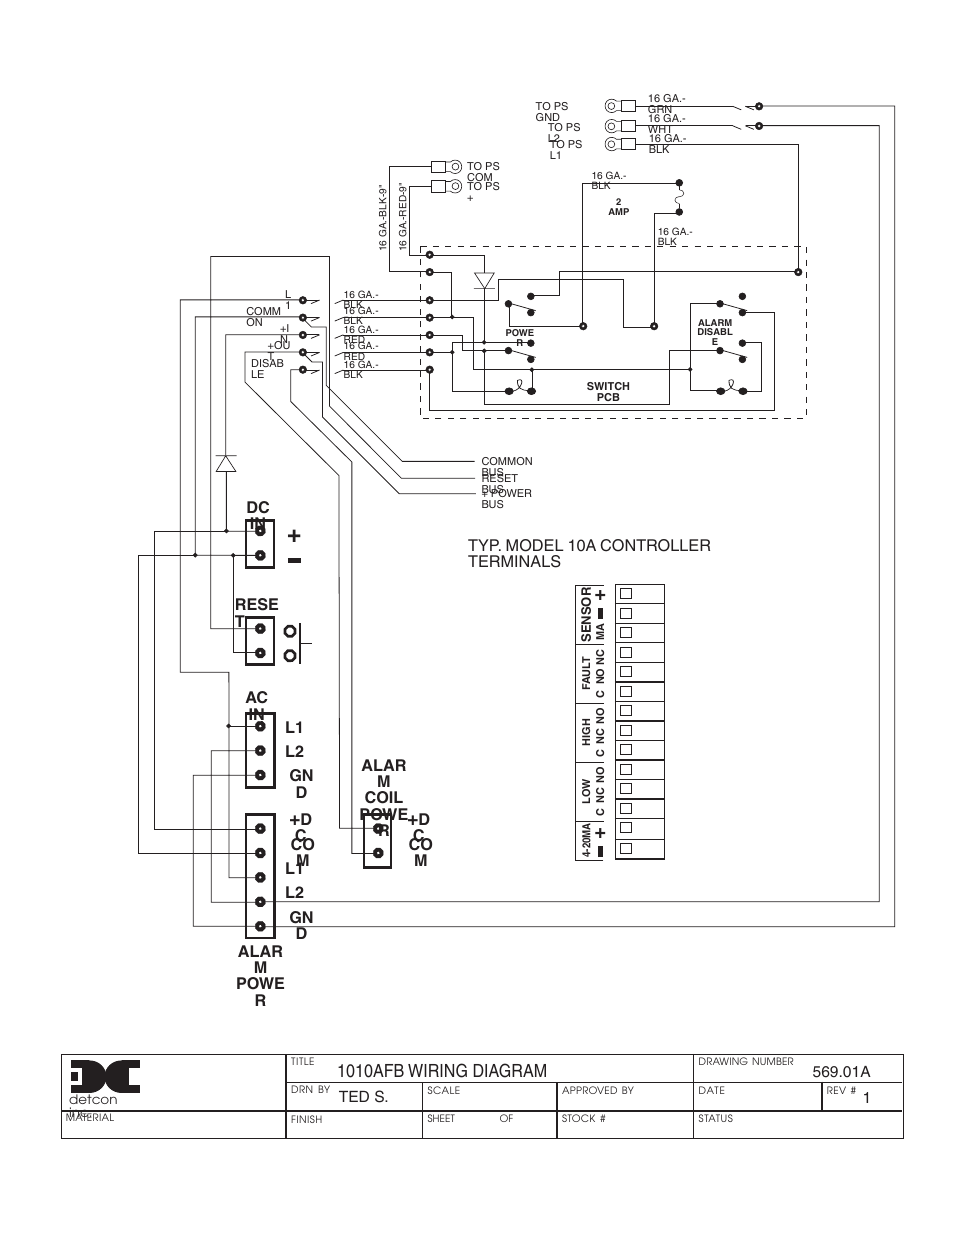 hight resolution of 1010afb wiring diagram dc in rese t ac in l1 l2 gn d dc co m l1 l2 gn d alar m powe r detcon 1010a fb user manual page 5 8